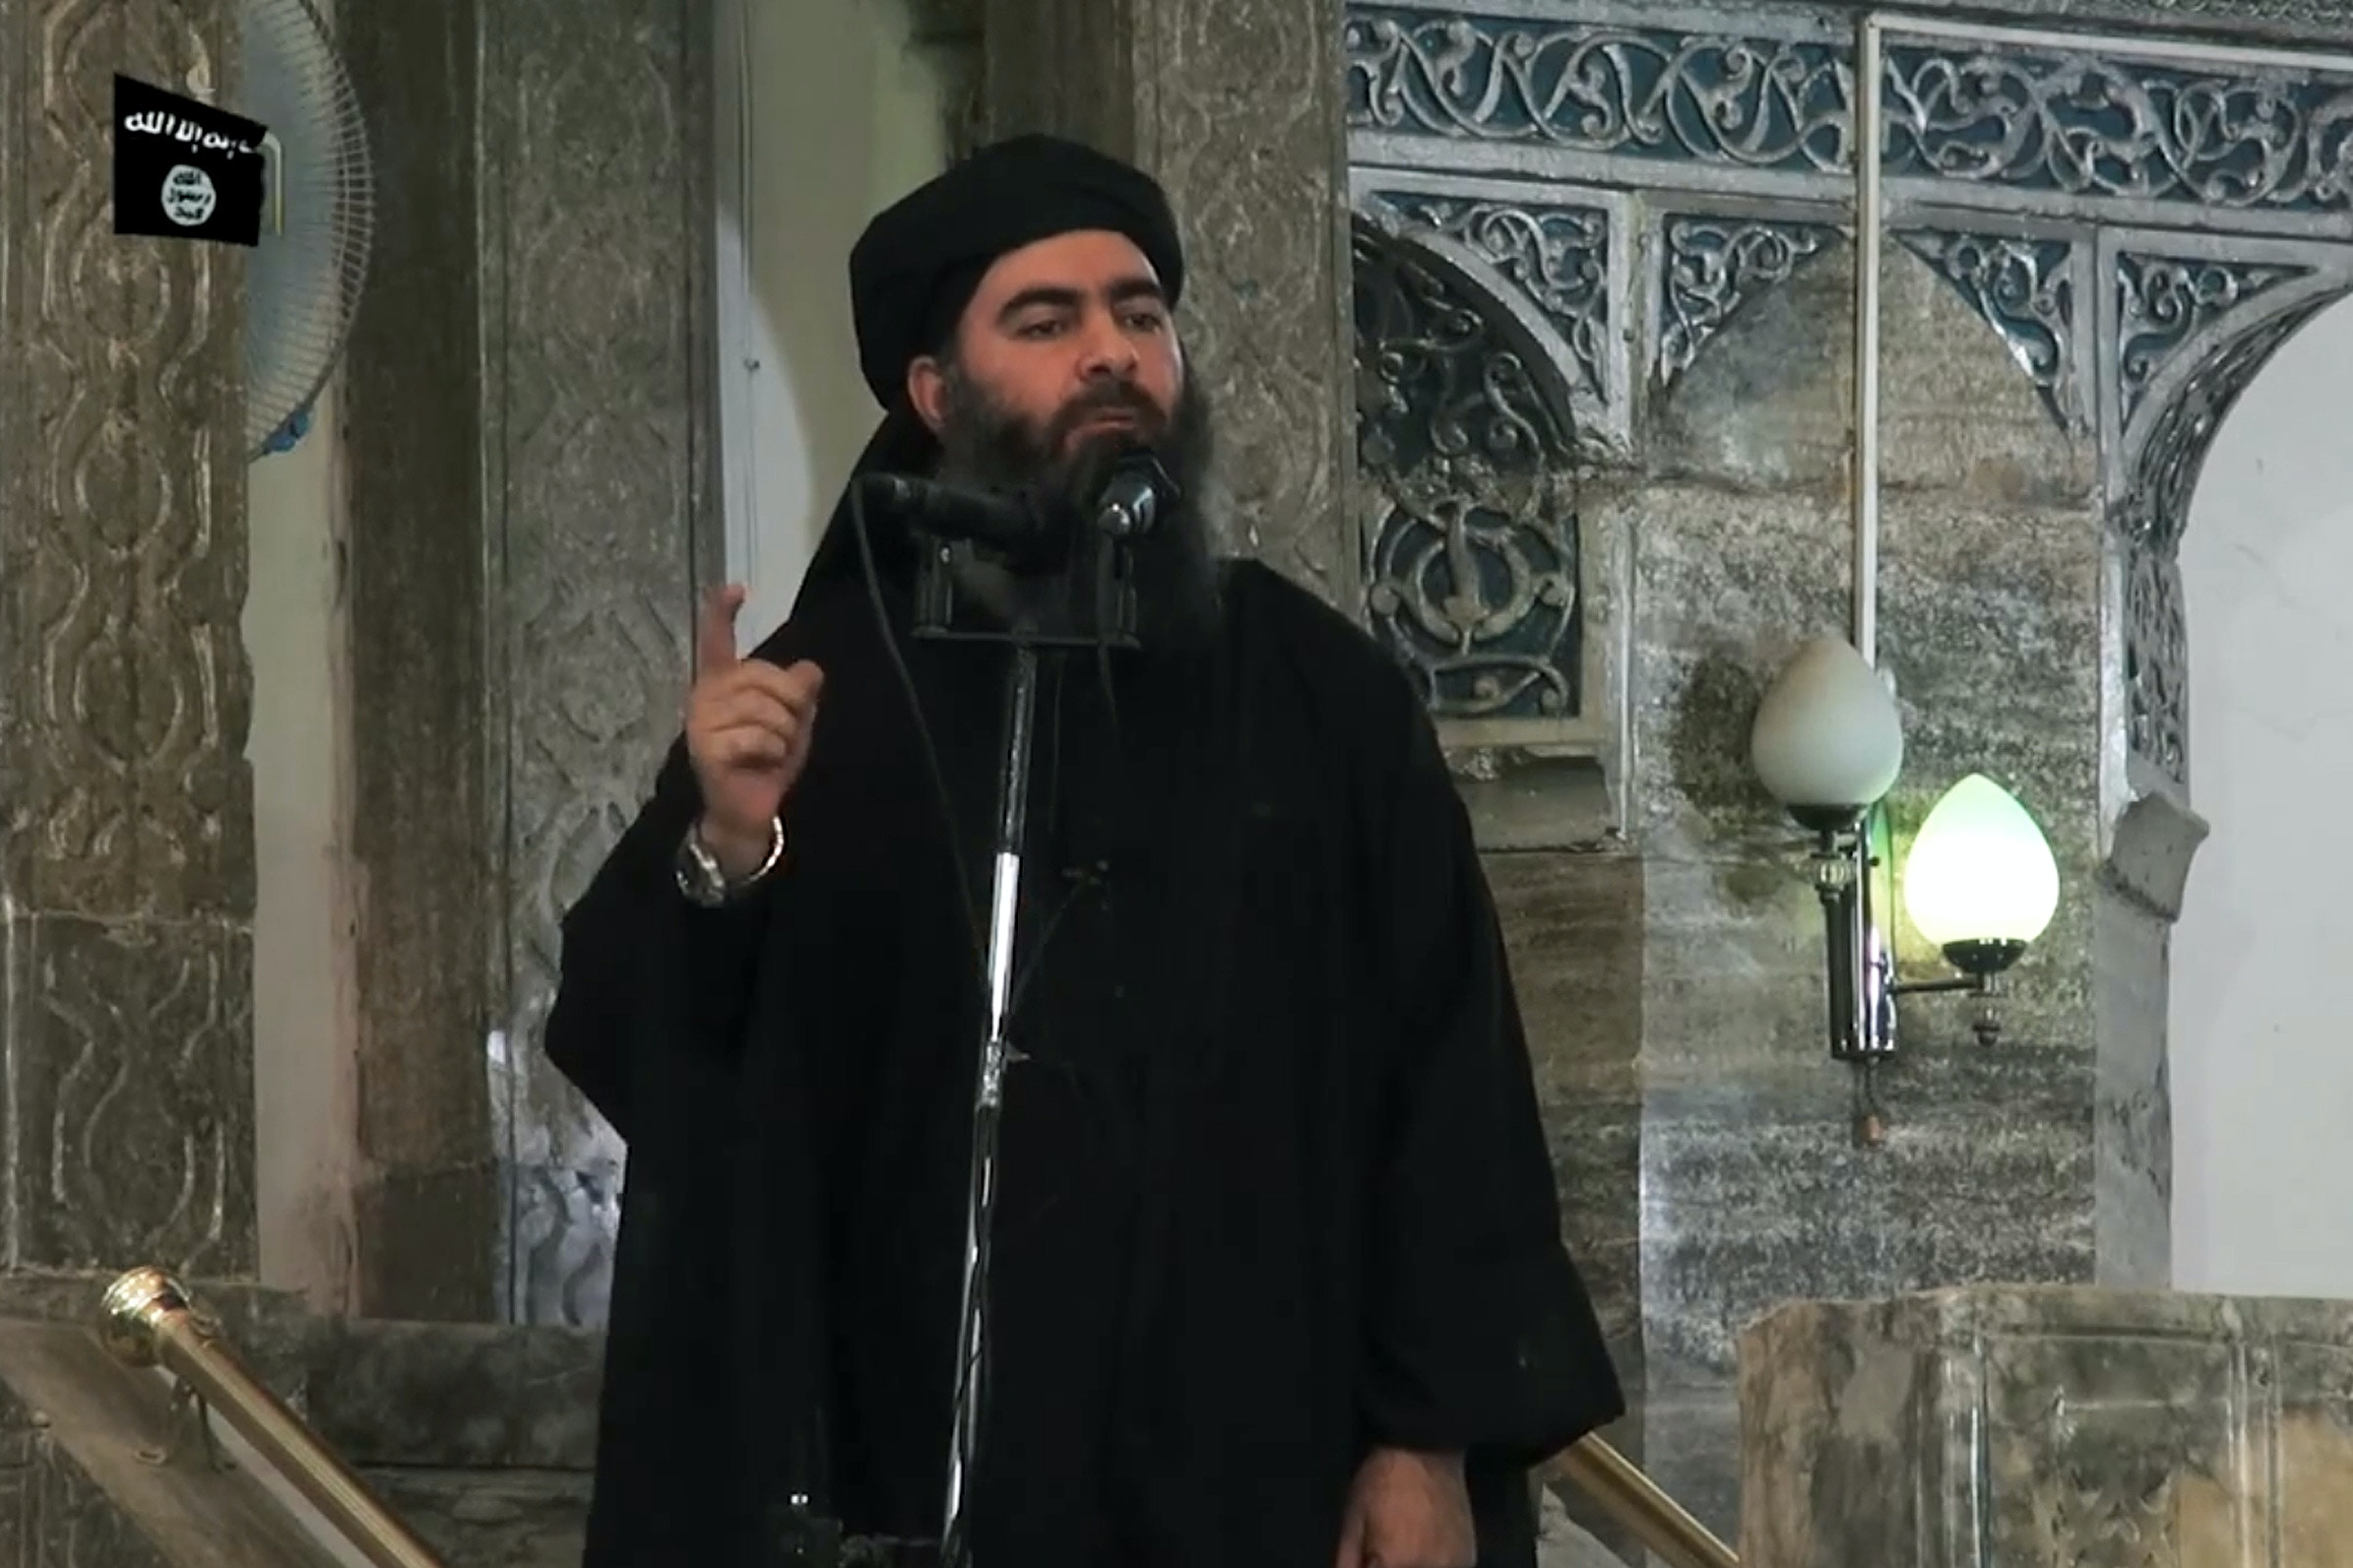 In this file picture taqken on July 5, 2014, an image grab taken from a propaganda video released by al-Furqan Media allegedly shows the leader of the Islamic State (IS) jihadist group, Abu Bakr al-Baghdadi, aka Caliph Ibrahim, adressing Muslim worshippers at a mosque in the militant-held northern Iraqi city of Mosul. (Photo by - / AFP)        (Photo credit should read -/AFP via Getty Images)